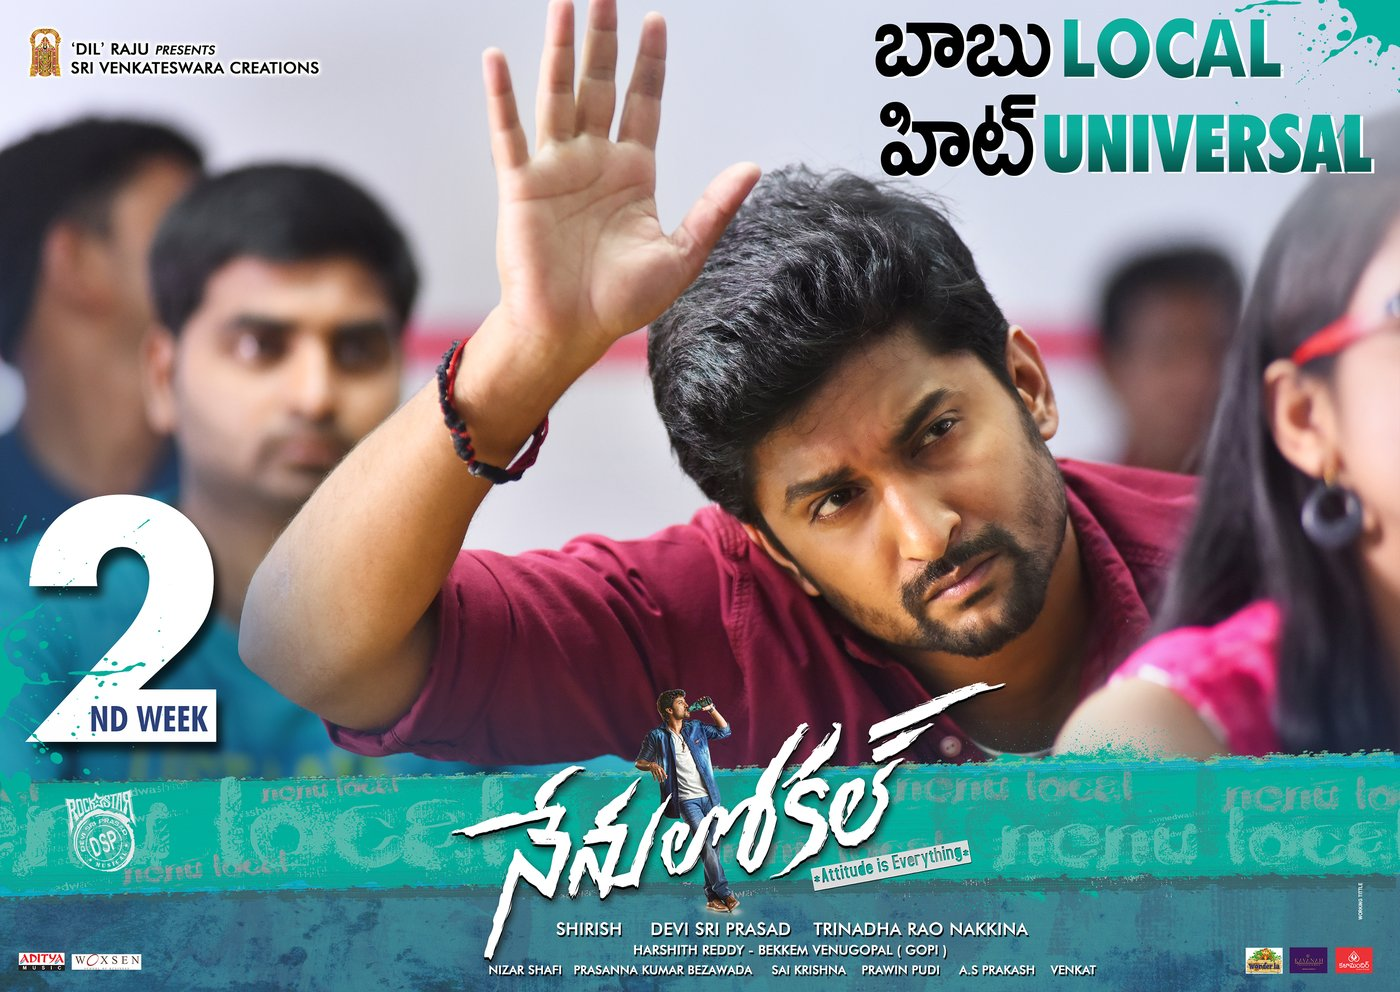 Nenu local movie wallpapers-HQ-Photo-1